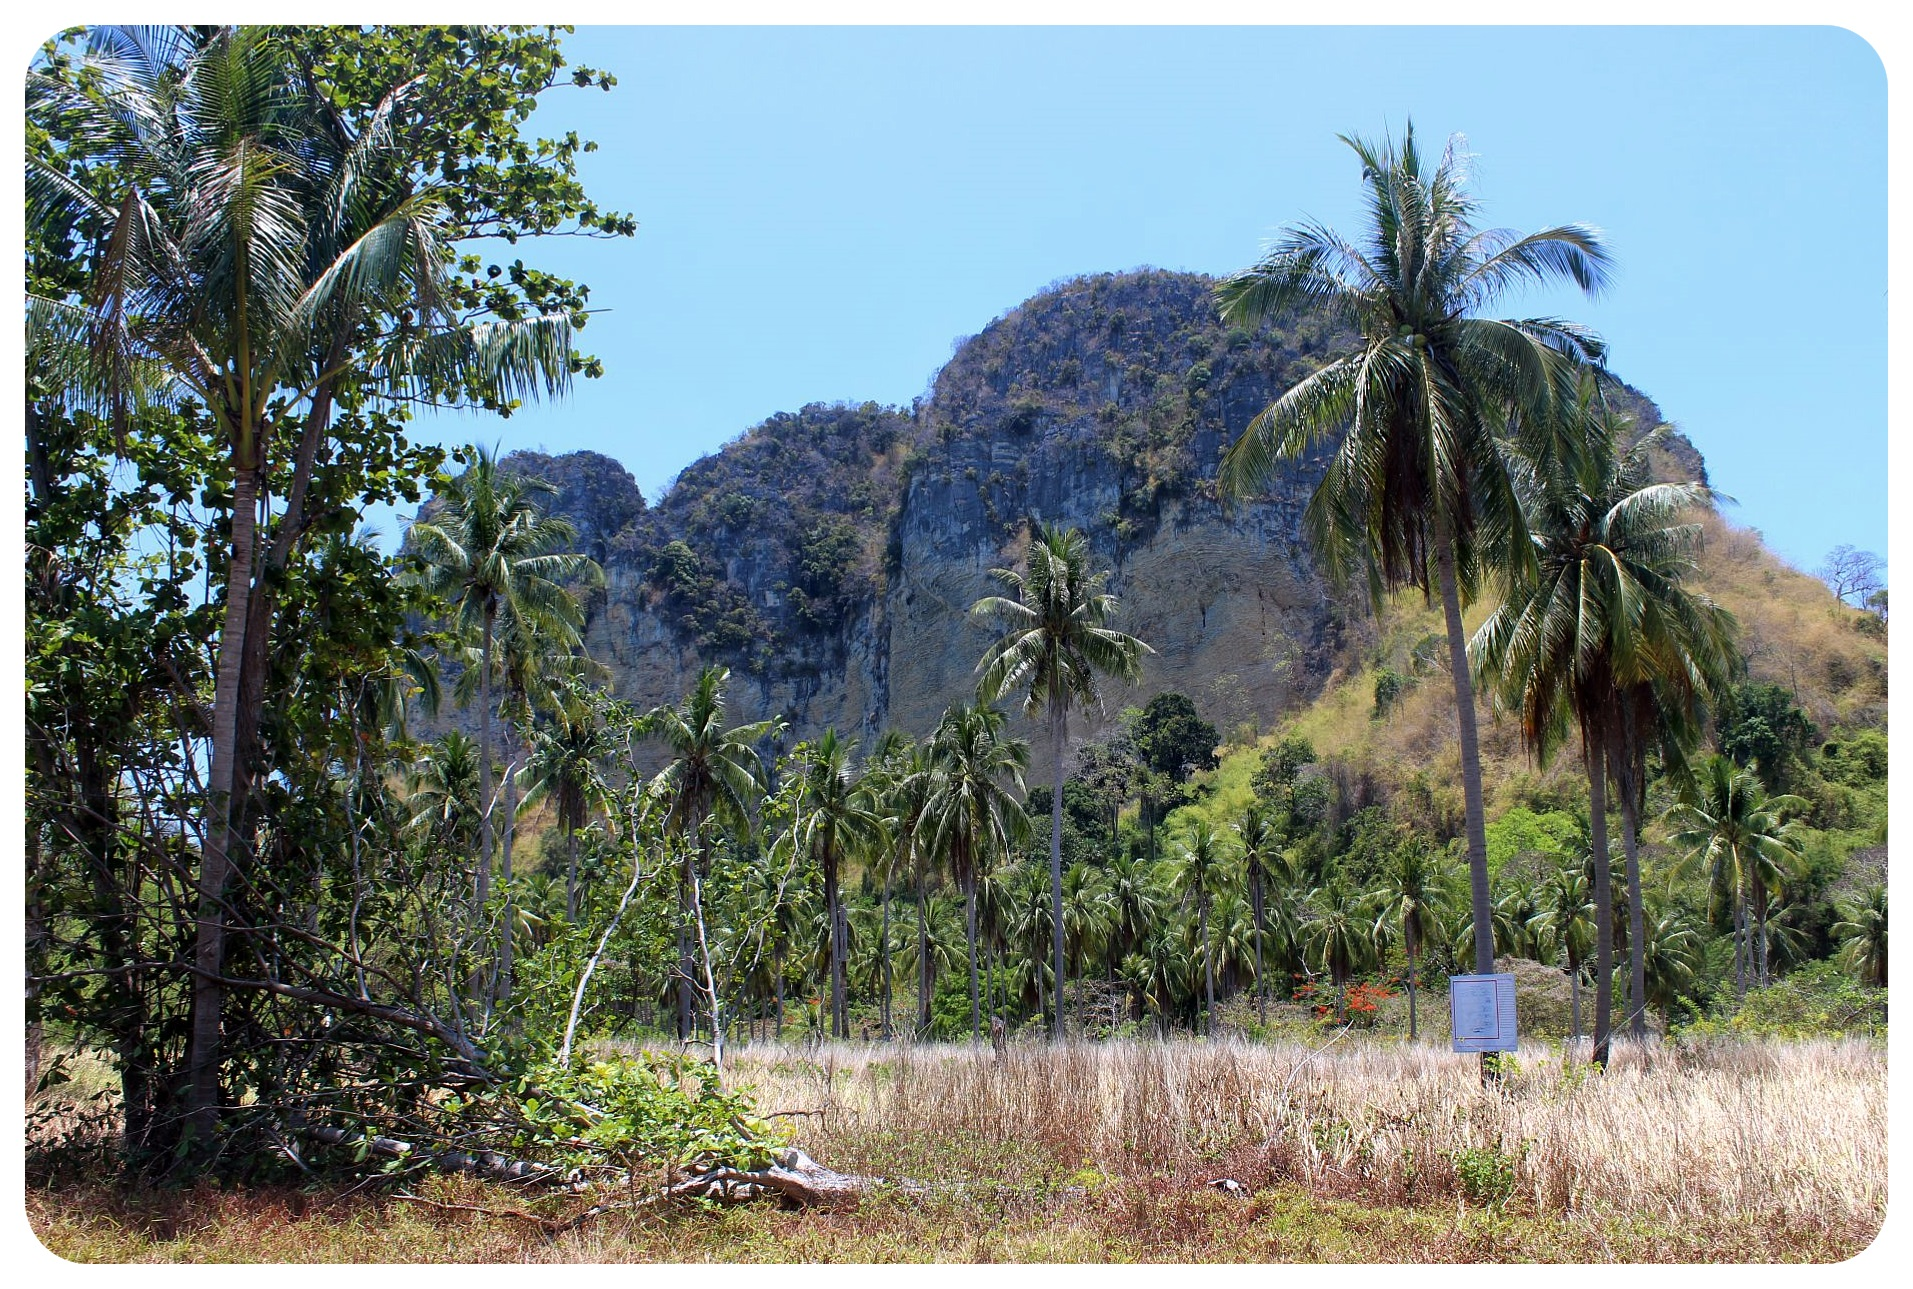 koh poda palm trees